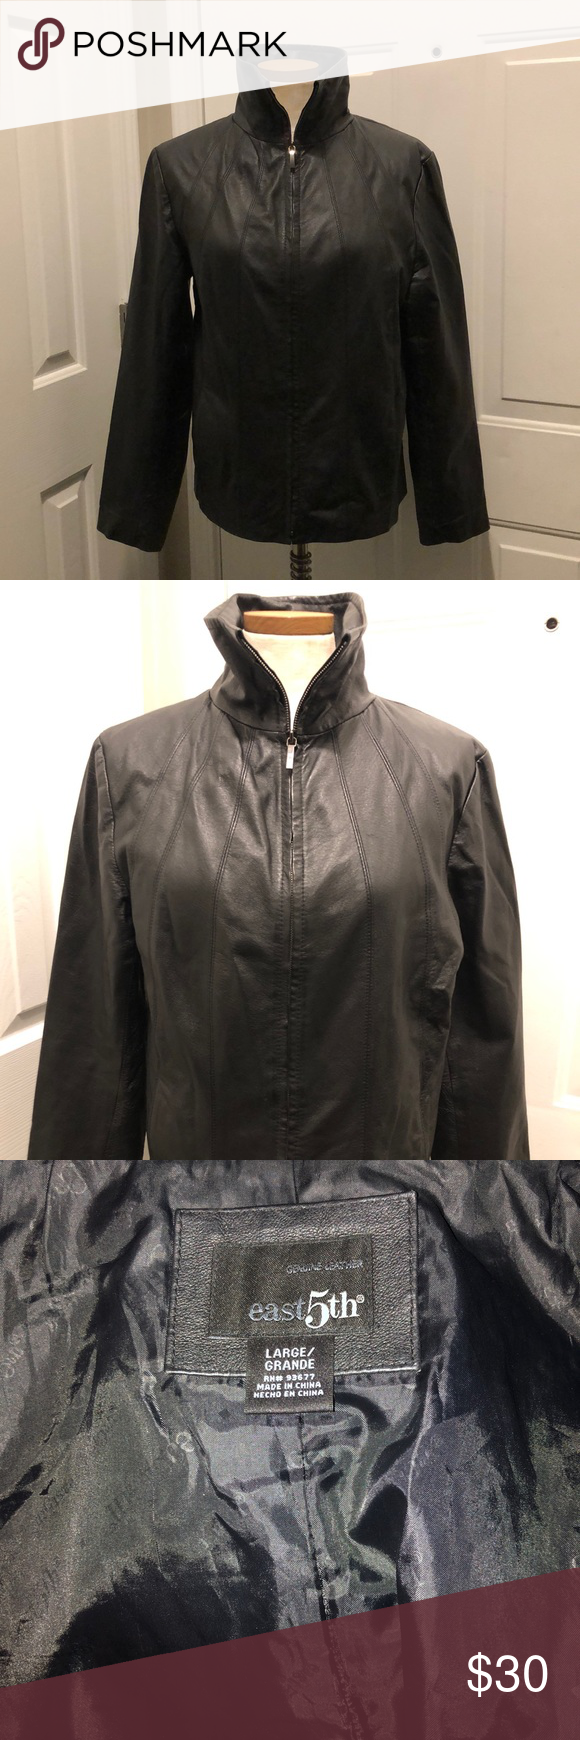 East 5th Leather Jacket Excellent Condition L